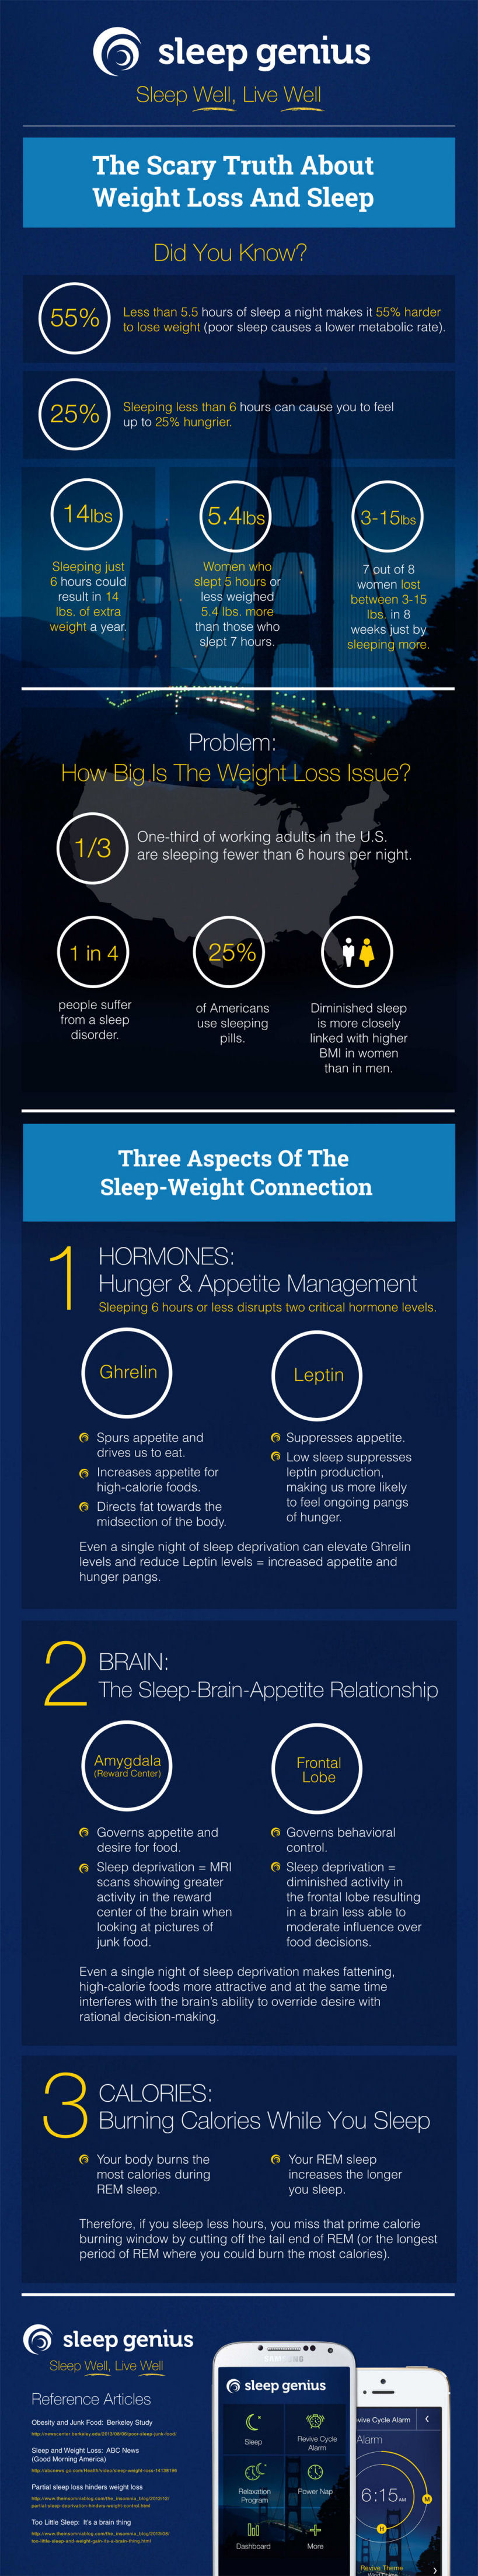 How sleep is related to weight loss